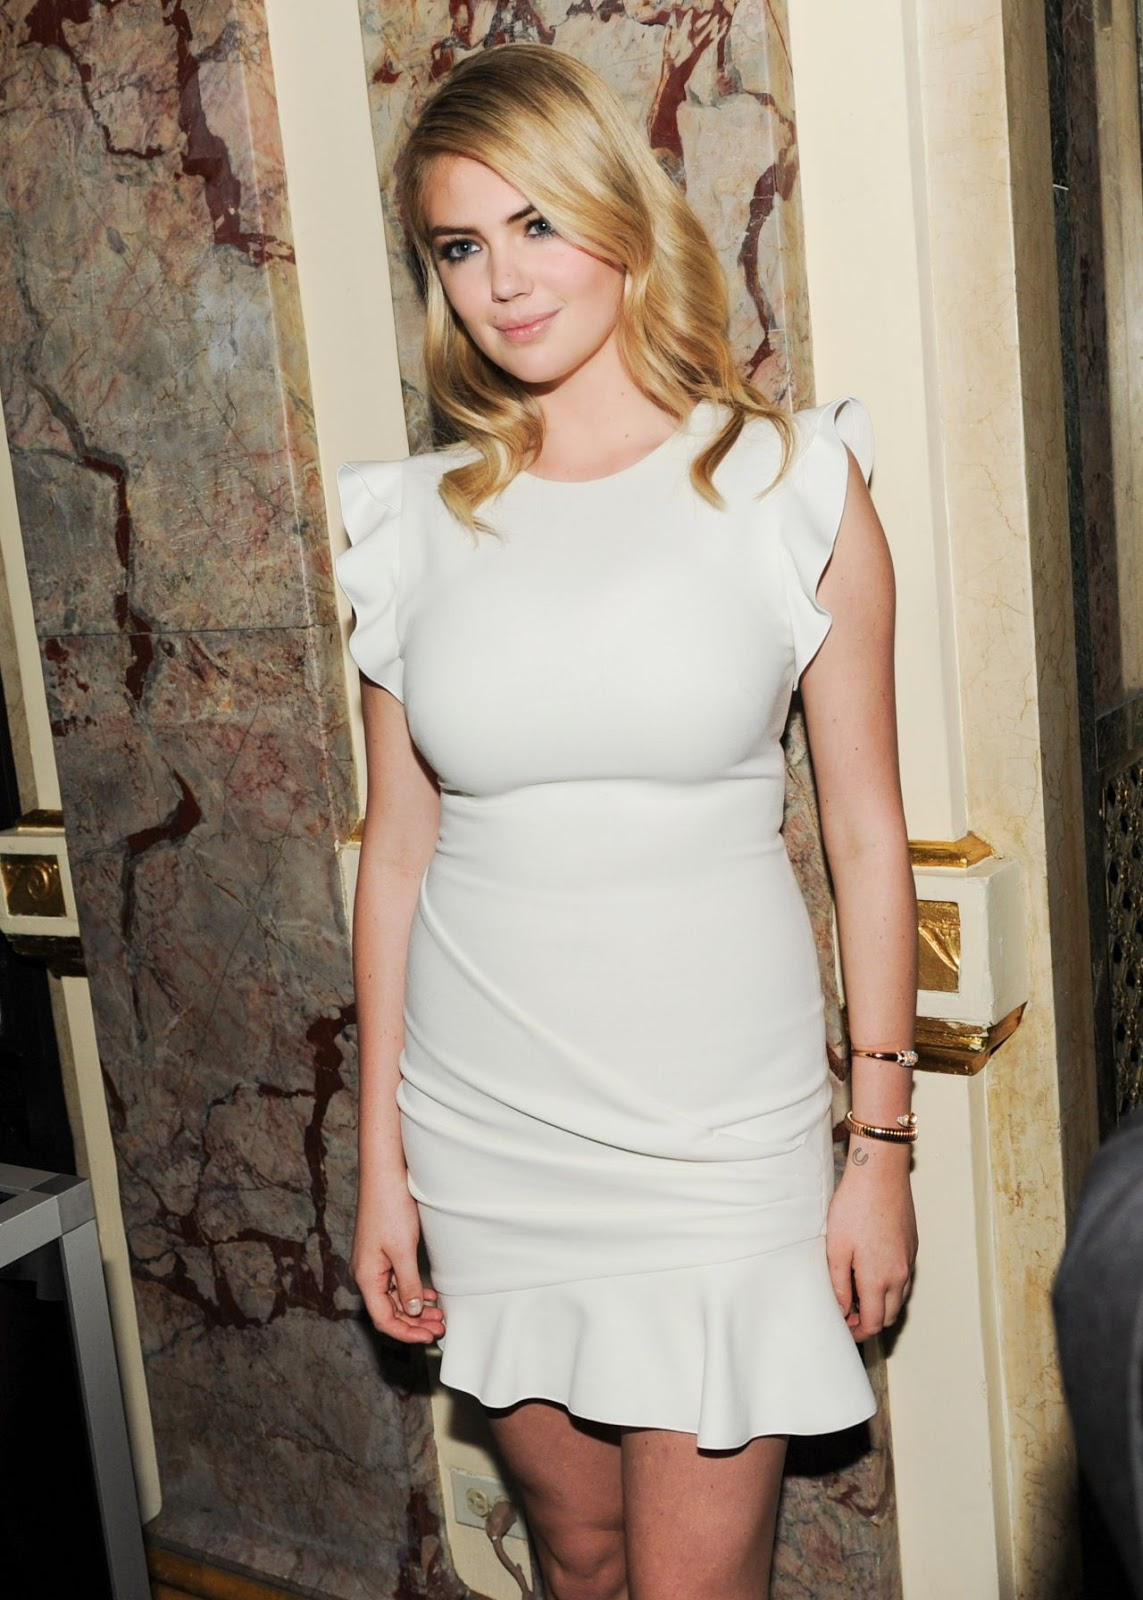 Harper s bazaar event looks more like a lingerie party page 12 - Kate Upton Opted To Dress Down Rather Than Dressing To Attract For The Party The Curvaceous Blonde Wore A Cream Emilio Pucci Minidress With A Peplum Detail